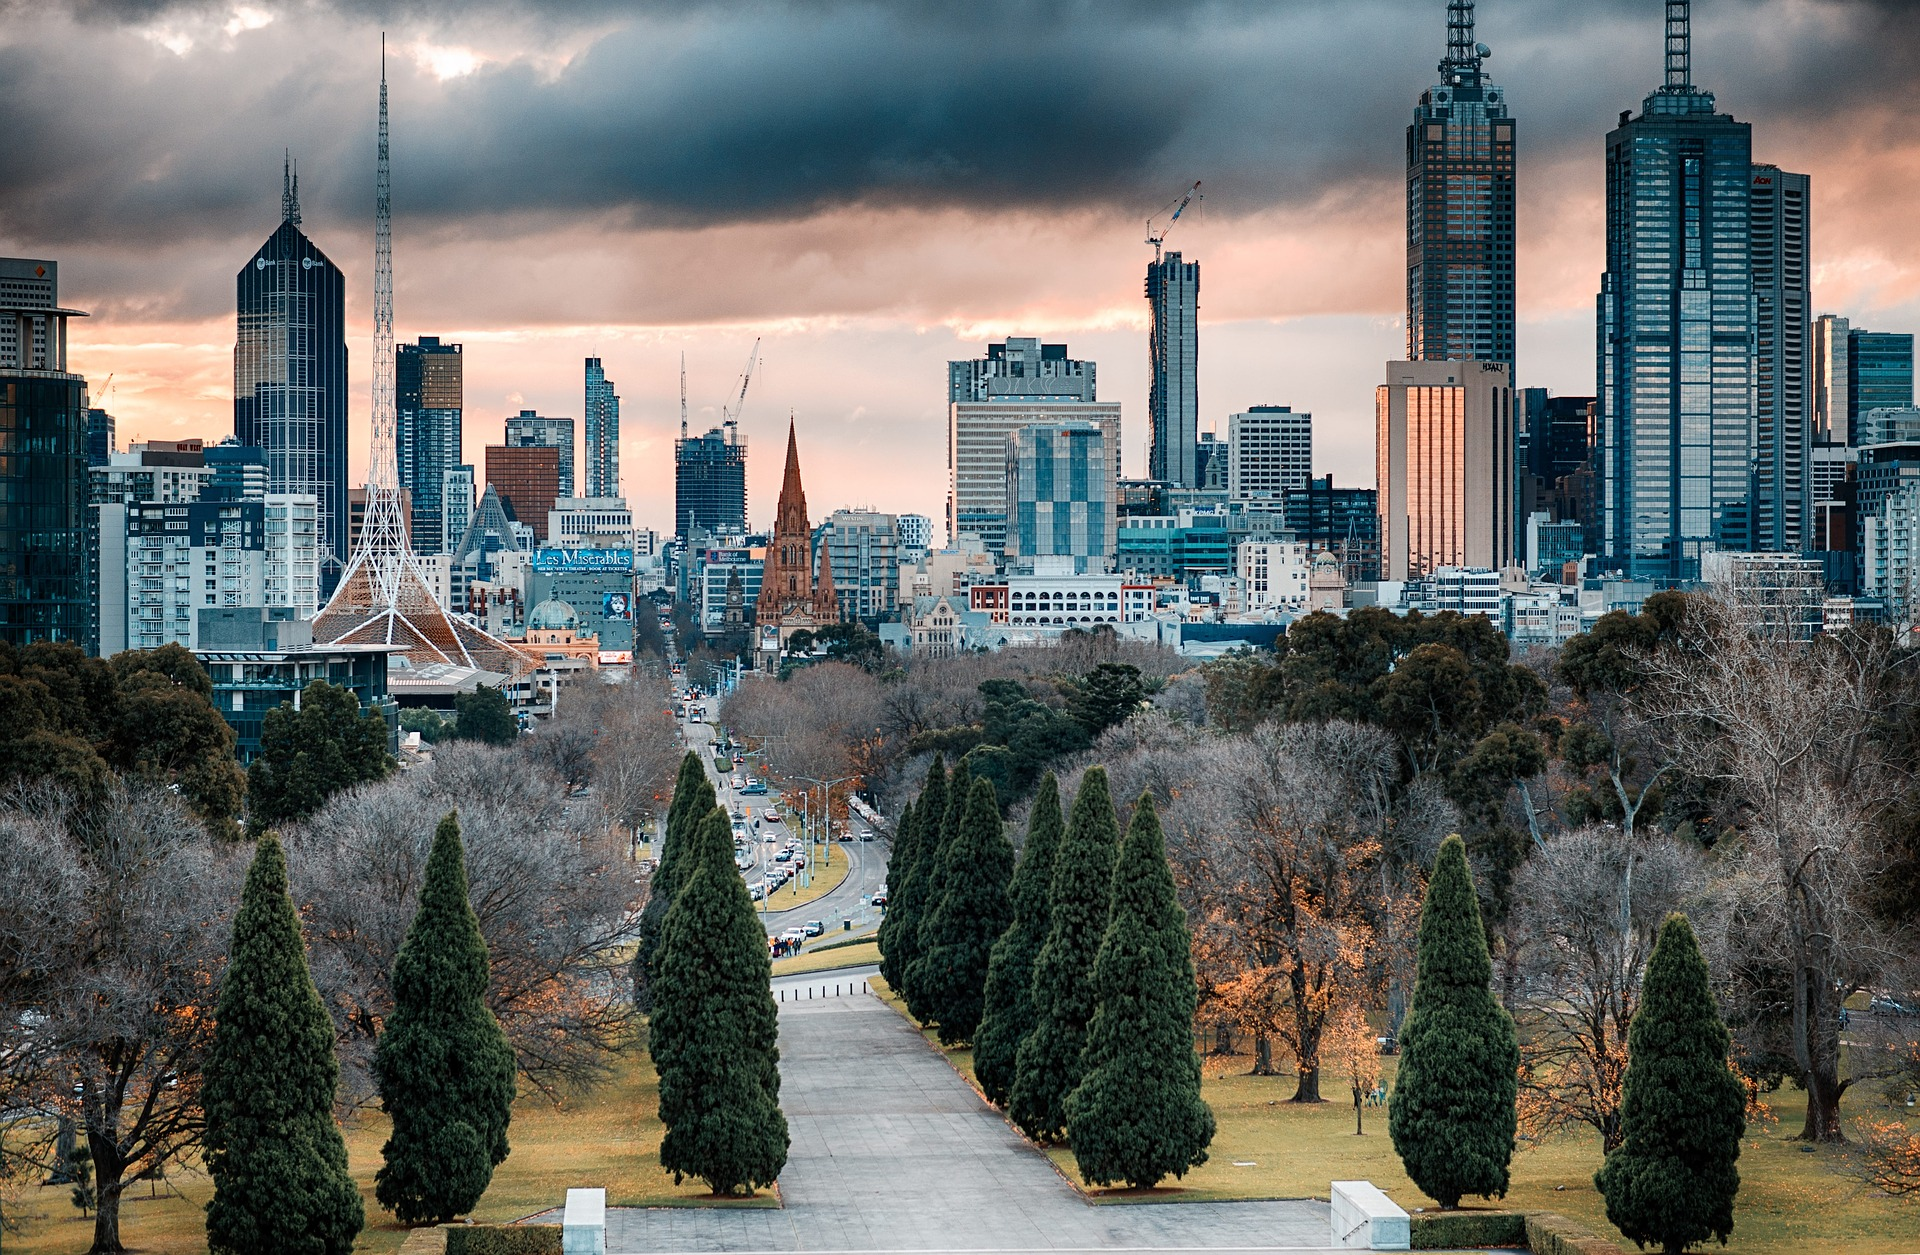 International students in Australia: A local's guide to Melbourne